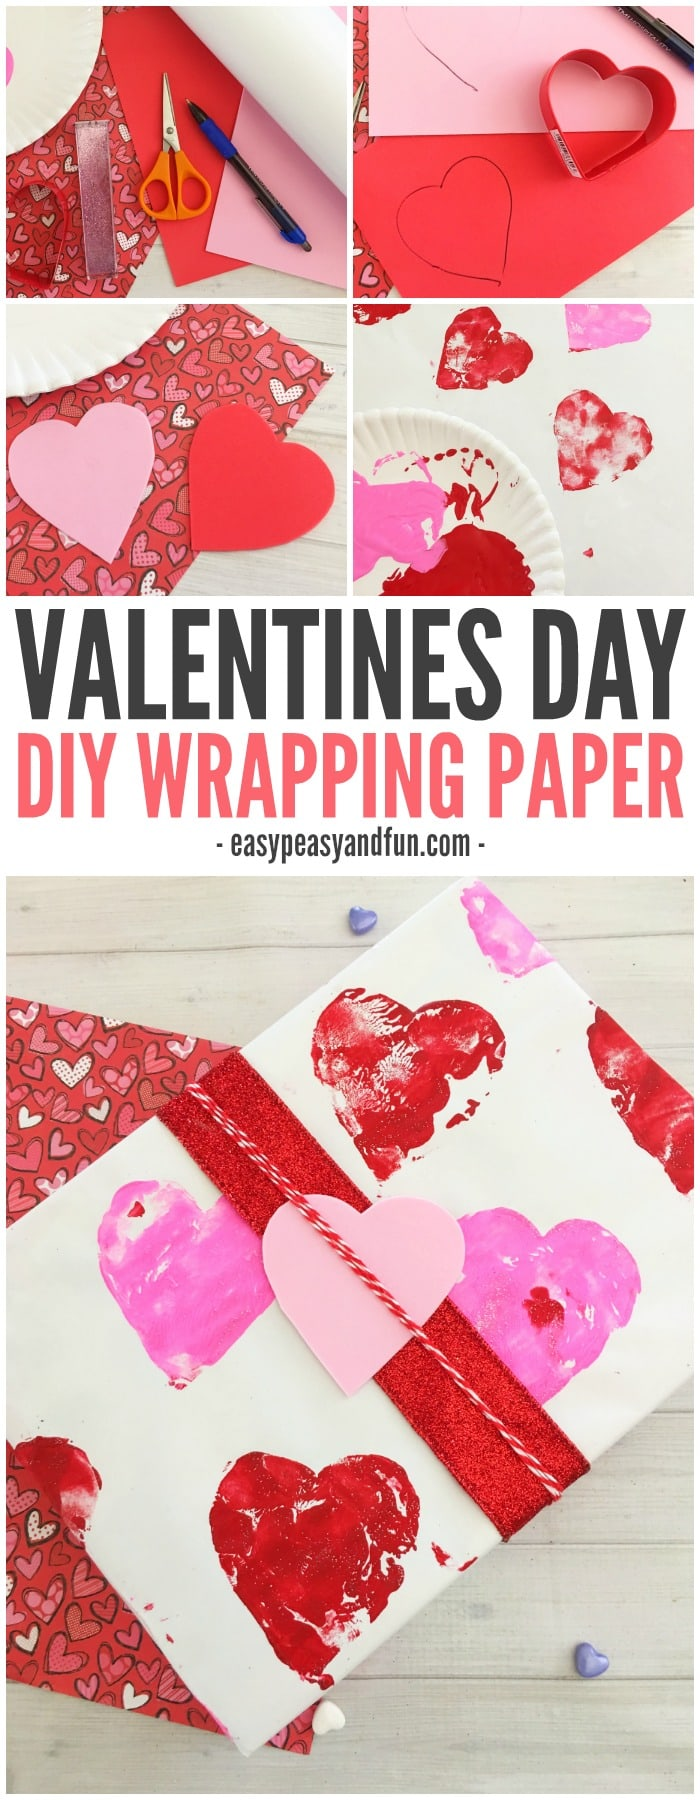 great wrapping paper Gift wrapping ideas for holiday, birthday, christmas presents creative diy techniques using bows, brown paper, ribbon, scraps and upcycled supplies how to make a gorgeous gift unique tips to wrap a present pretty present tutorials | see more ideas about gift wrapping, wrapping and gift boxes.